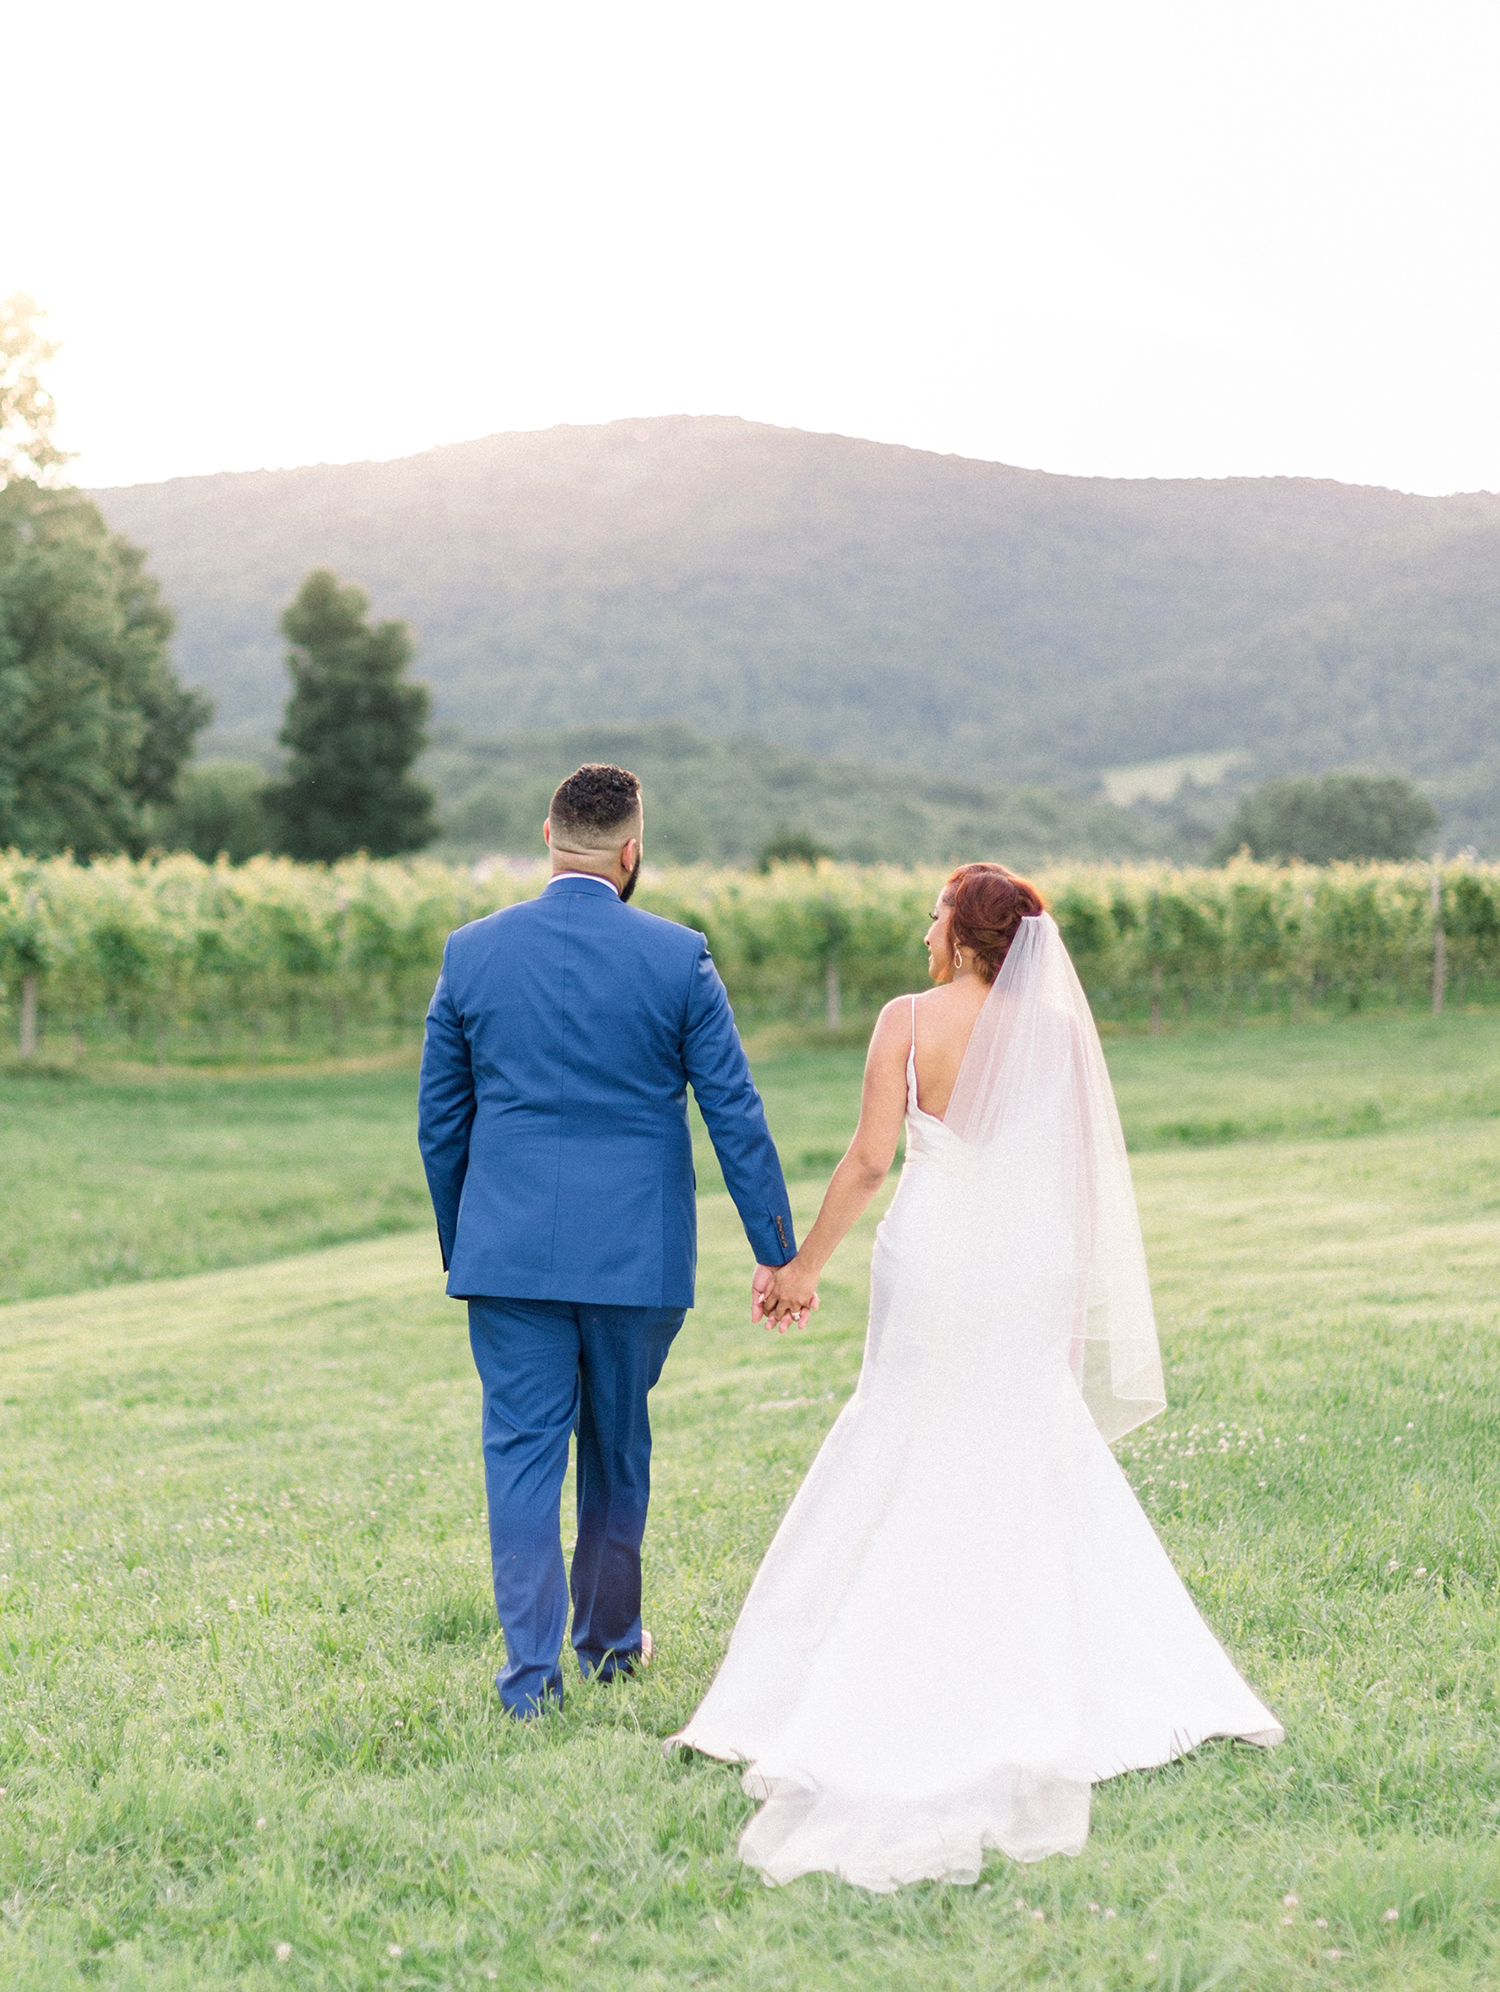 dawn rich wedding couple holding hands in field with mountain behind